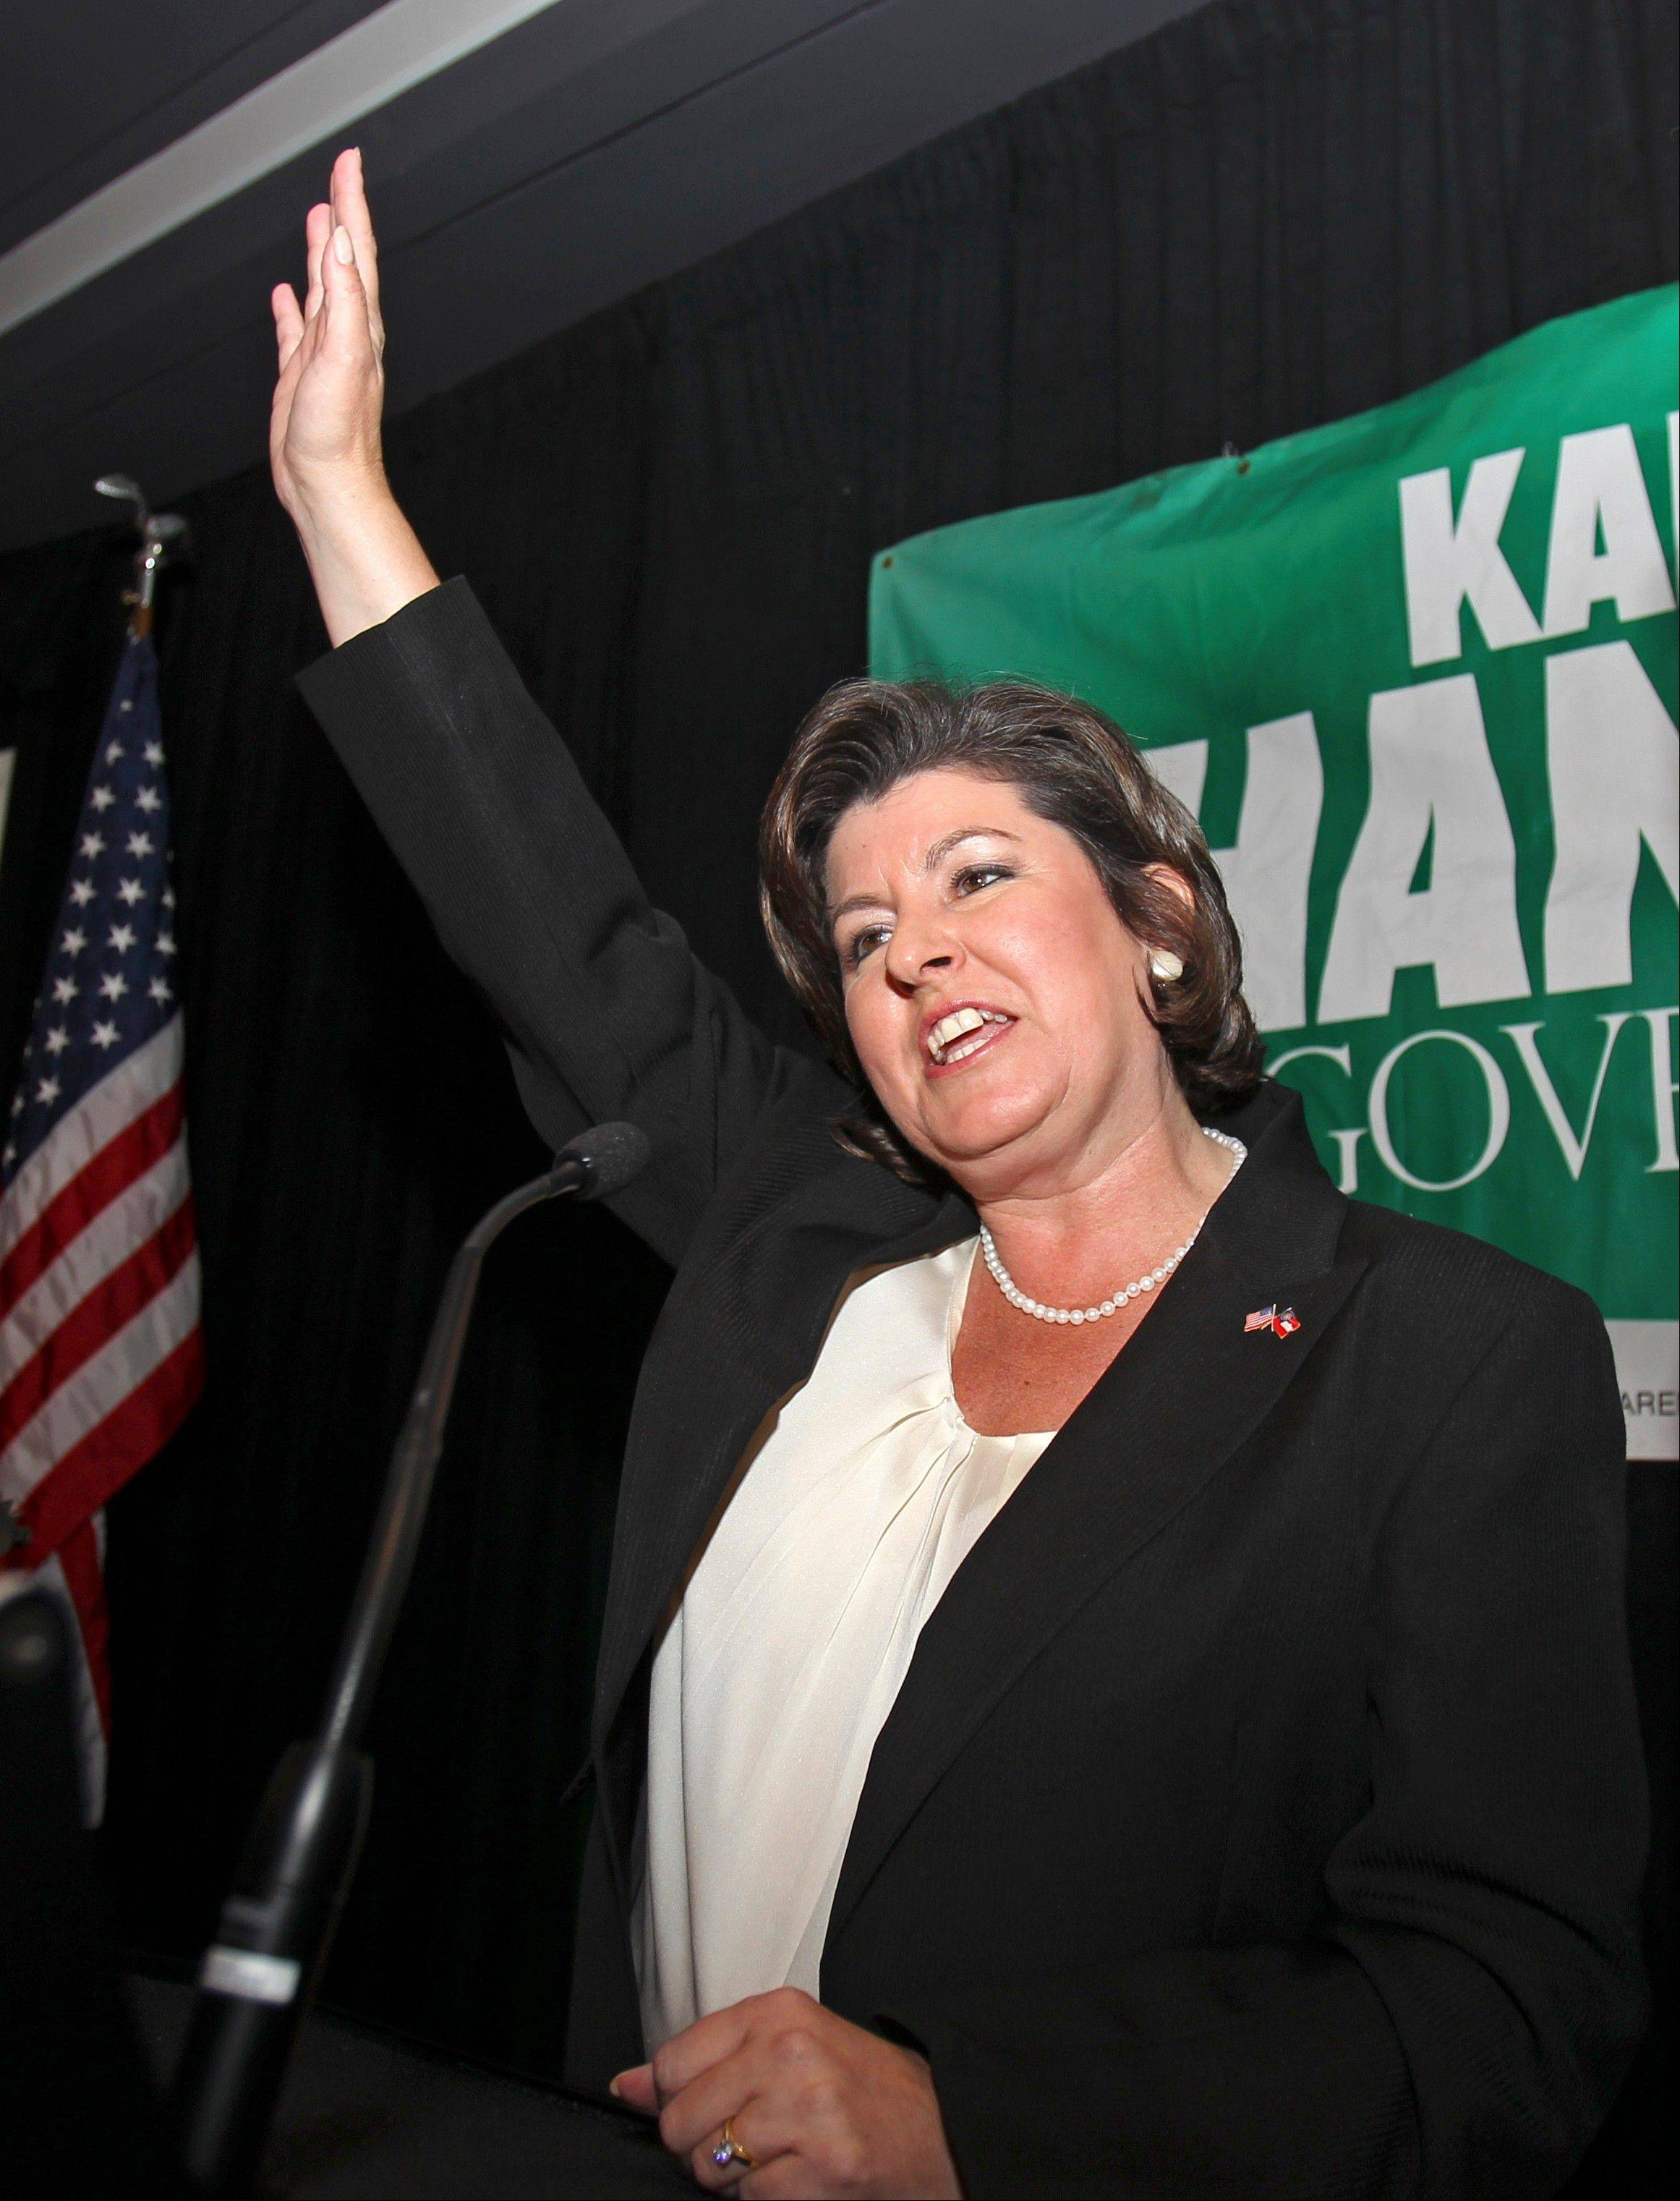 Karen Handel, seen above as Georgia gubernatorial candidate in 2010, was a driving force behind Susan G. Komen for the Cure's decision to cut breast-screening grants to Planned Parenthood earlier this year.